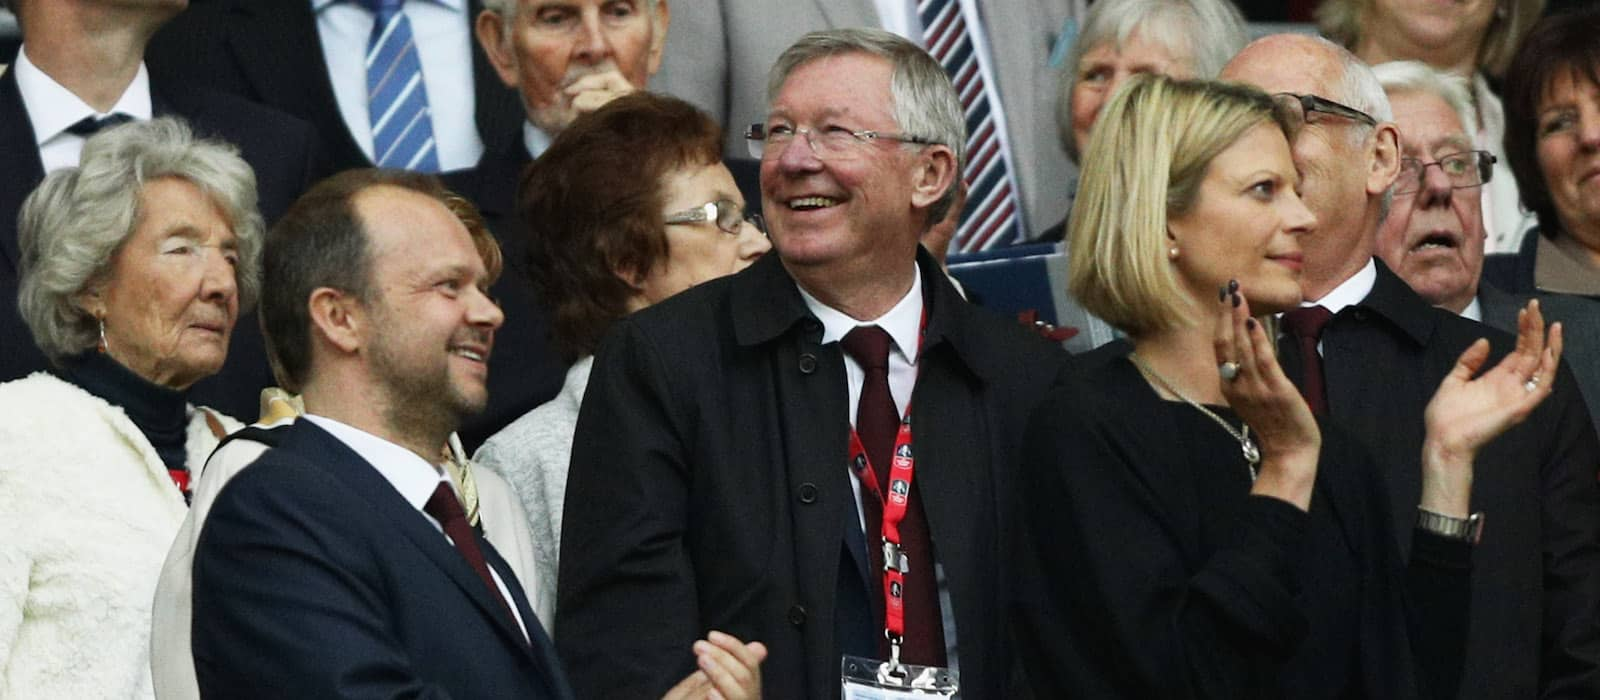 Jim Pallota: This is why I brought Manchester United's Sir Alex Ferguson to watch Roma